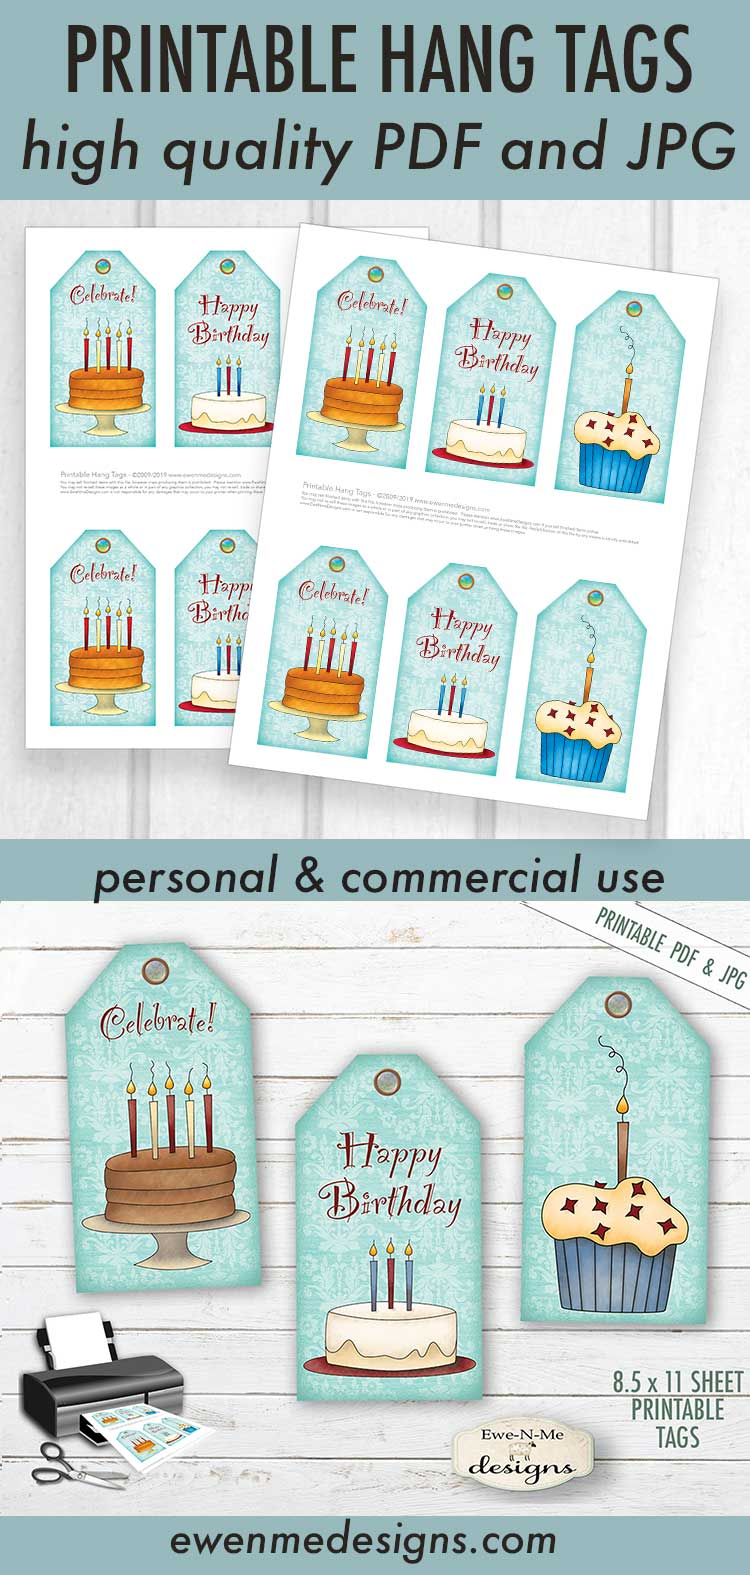 Printable Birthday Tags - Cake Cupcakes - PDF & JPG example image 3